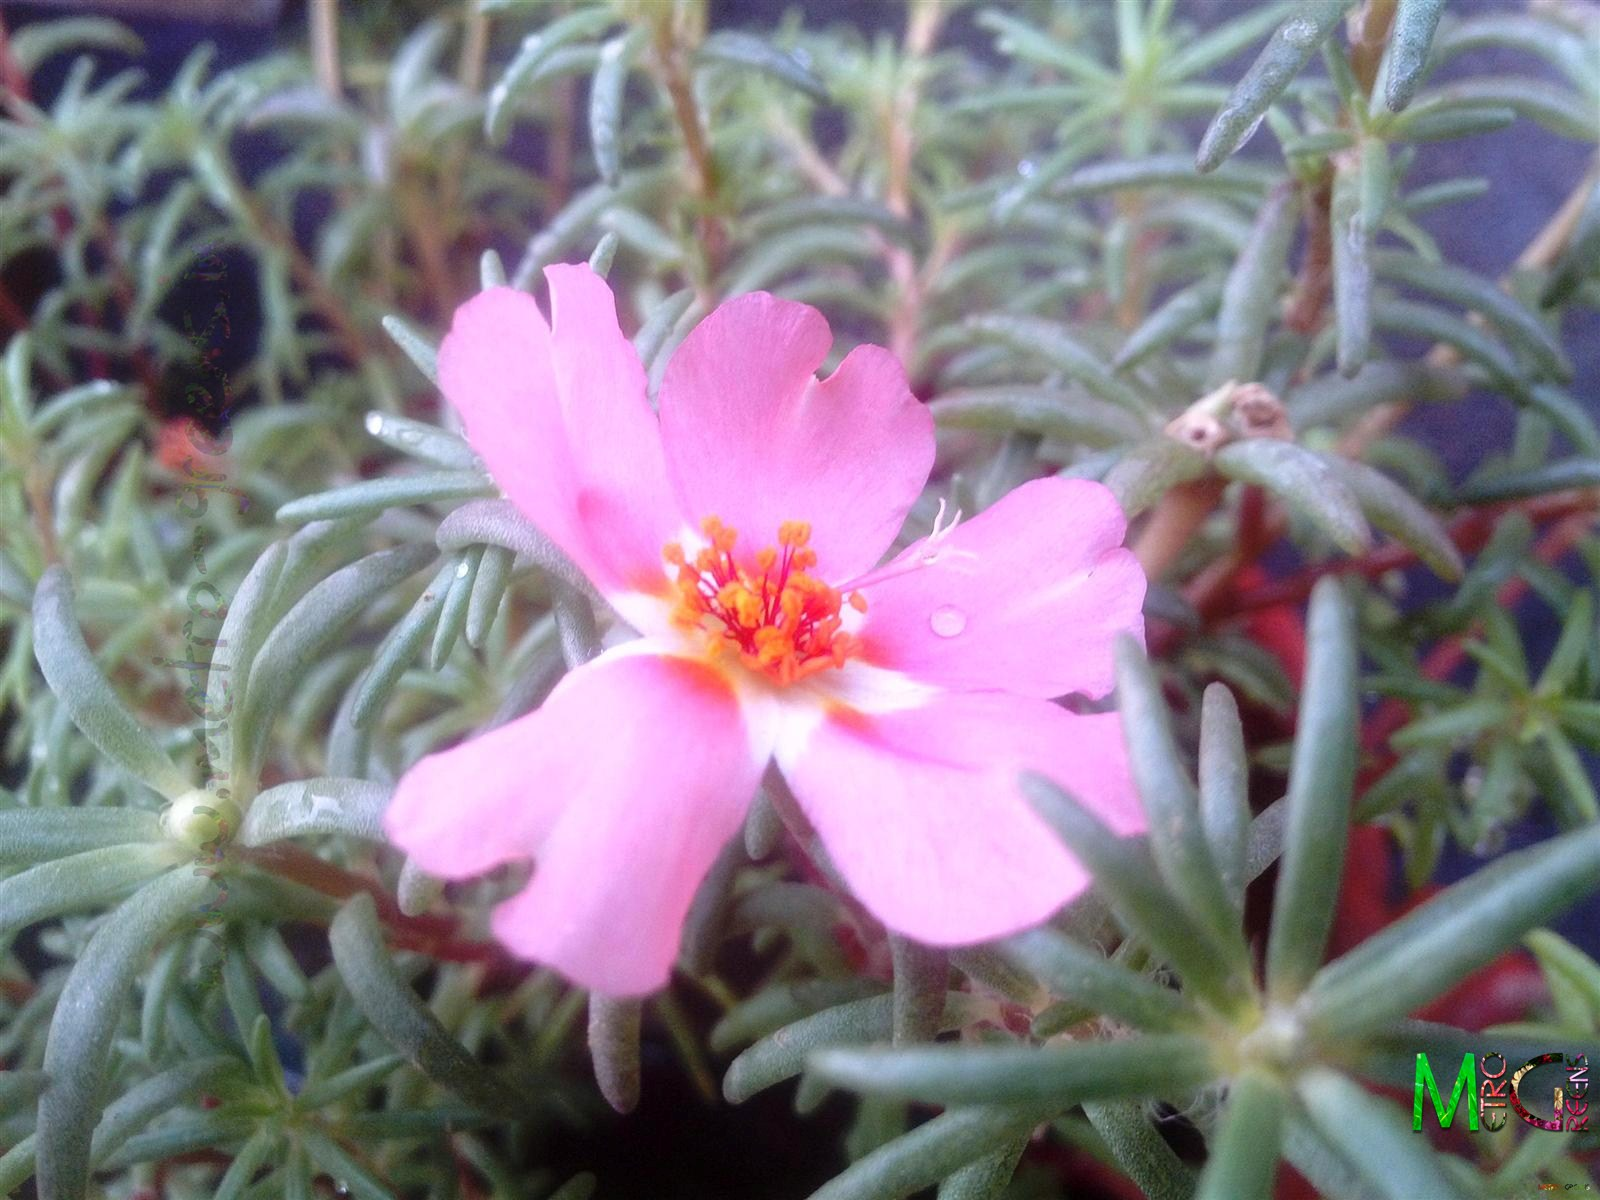 Metro Greens: A light pink portulaca bloom.